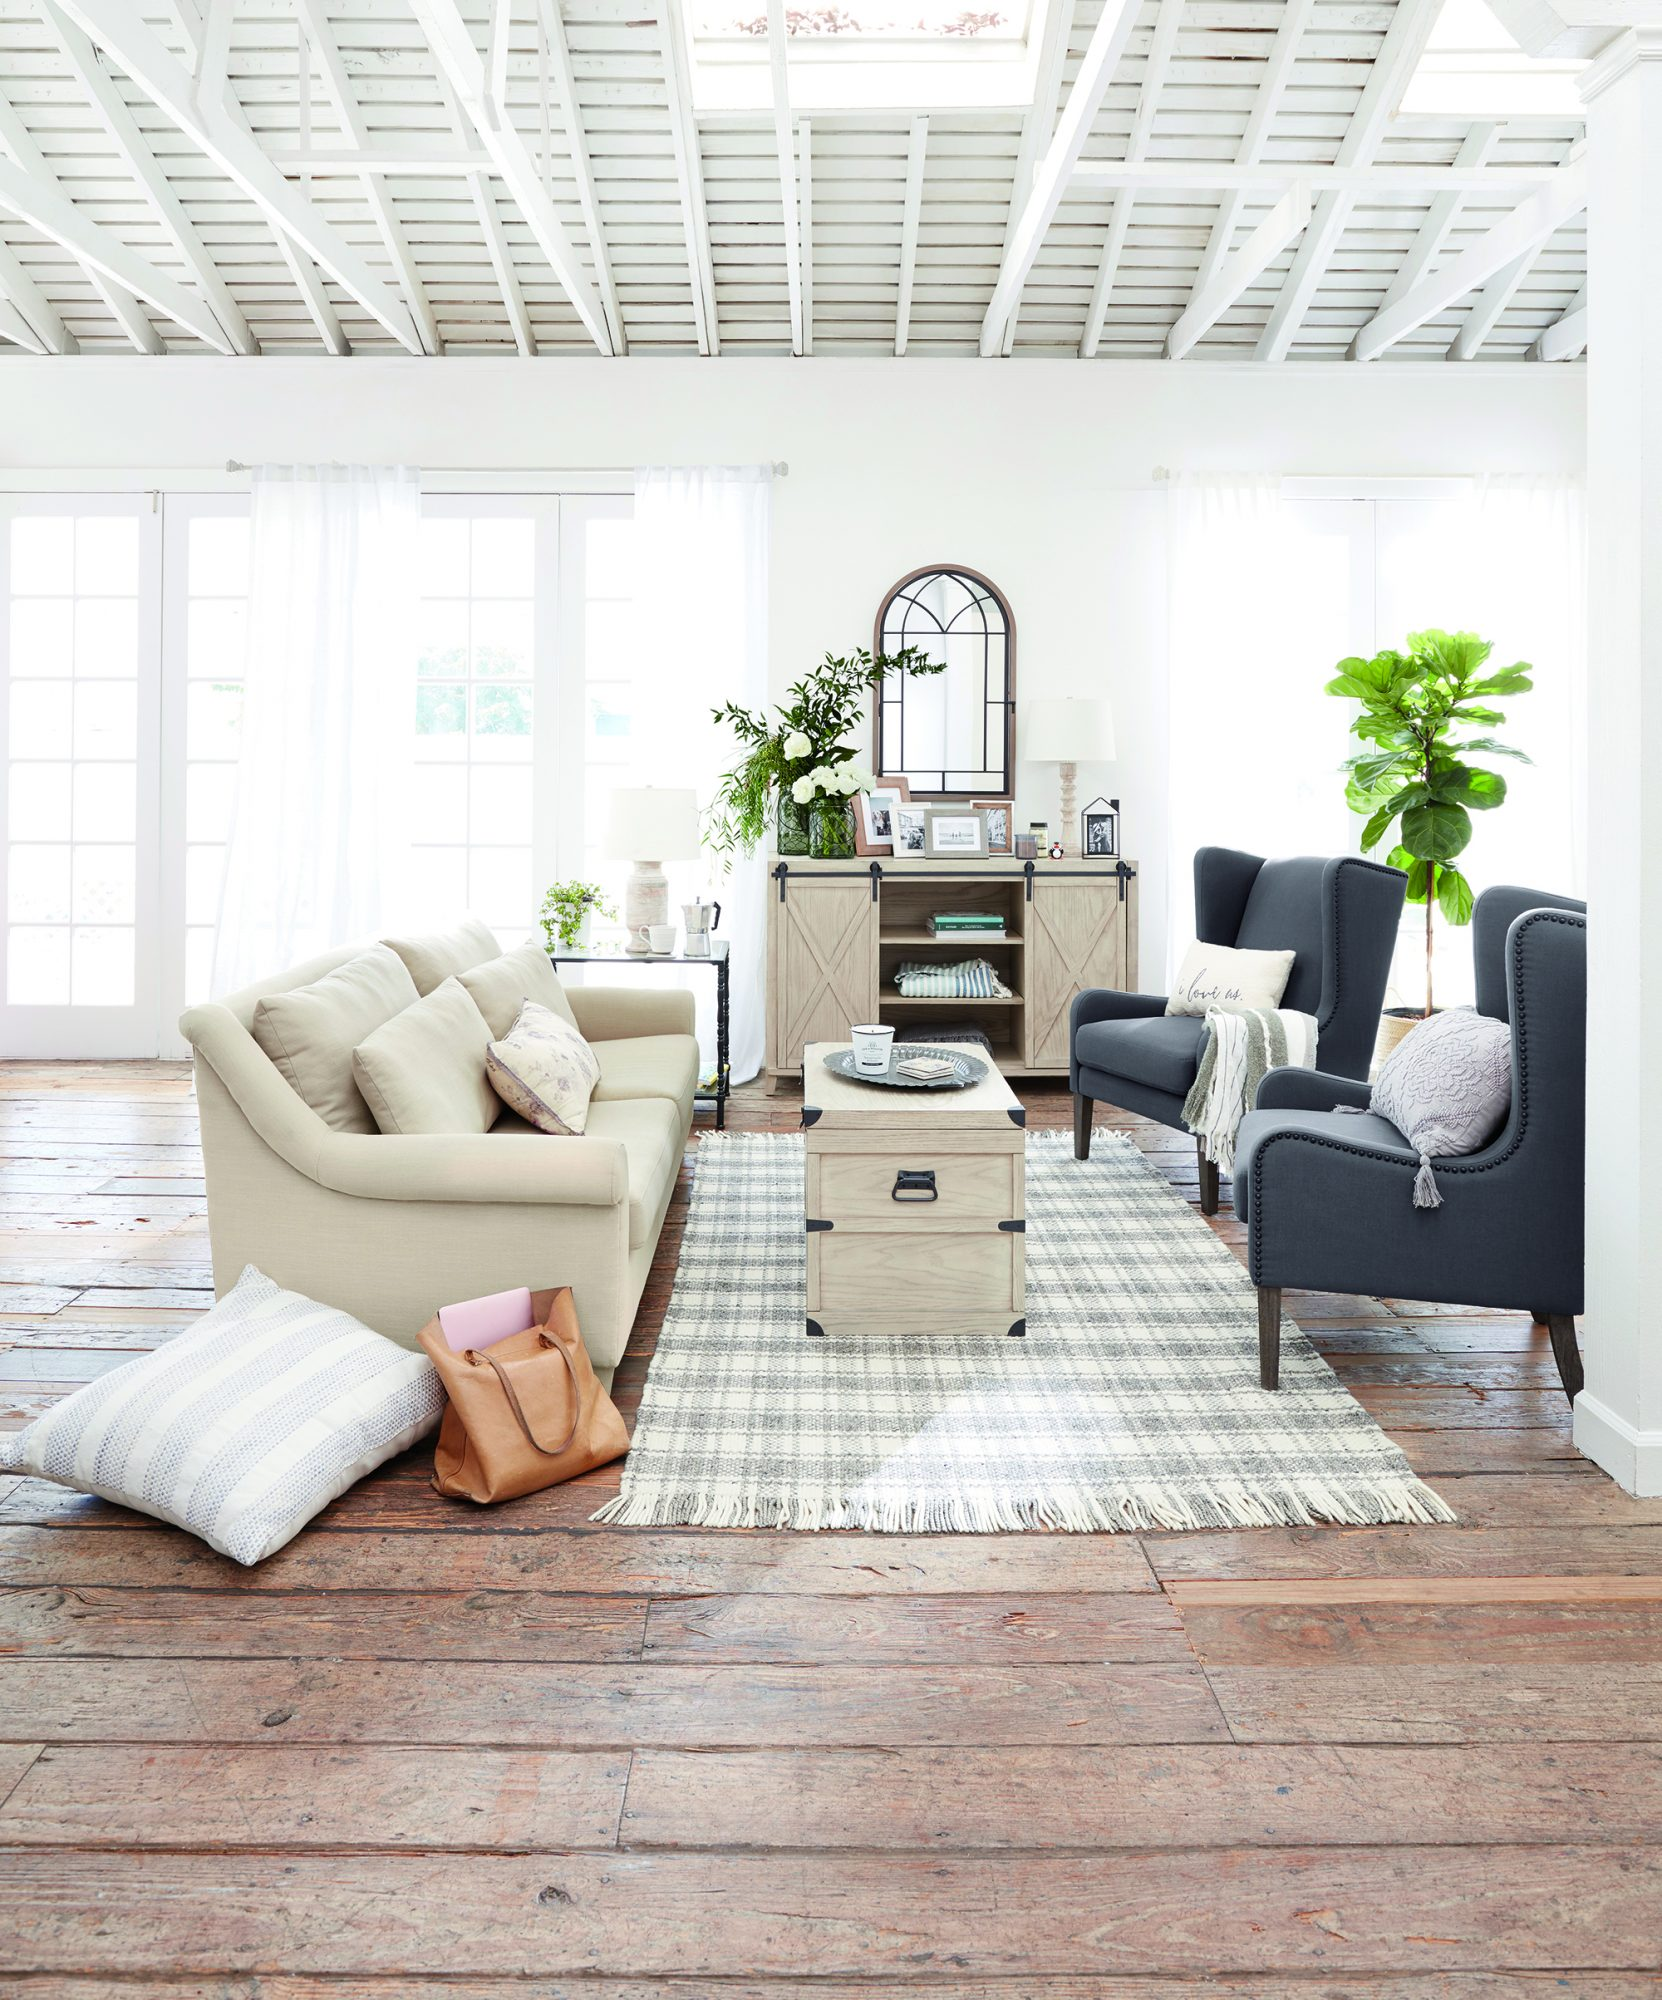 Get Your Coupons Ready! Bed Bath & Beyond Just Launched Its First Home Collection